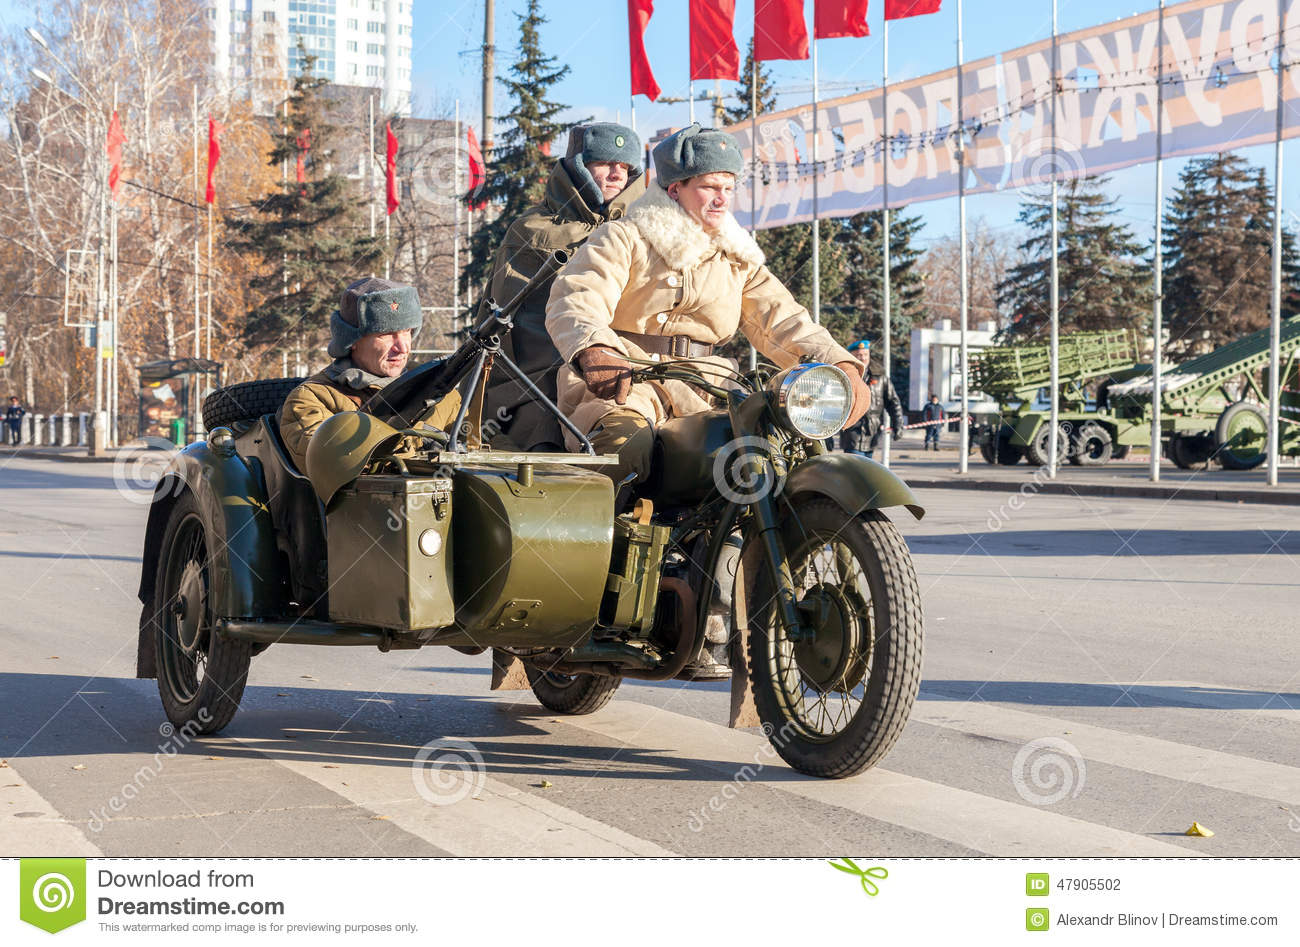 old time kitchen designs with Editorial Photography Soviet Soldiers Weapons Old Army Motorcycle Samara Russia November Reenactment Parade Kuibyshev Square Image47905502 on 26 Modern Luxury Bathroom Designs moreover Inspirational Bathroom Colors moreover Travel To New Realms Of Relaxa in addition Heart Shaped Furniture And Decor Ideas besides Royalty Free Stock Image Cafe Menu Abstract Pattern Brown Colors Coffee Beans Background Image32625326.